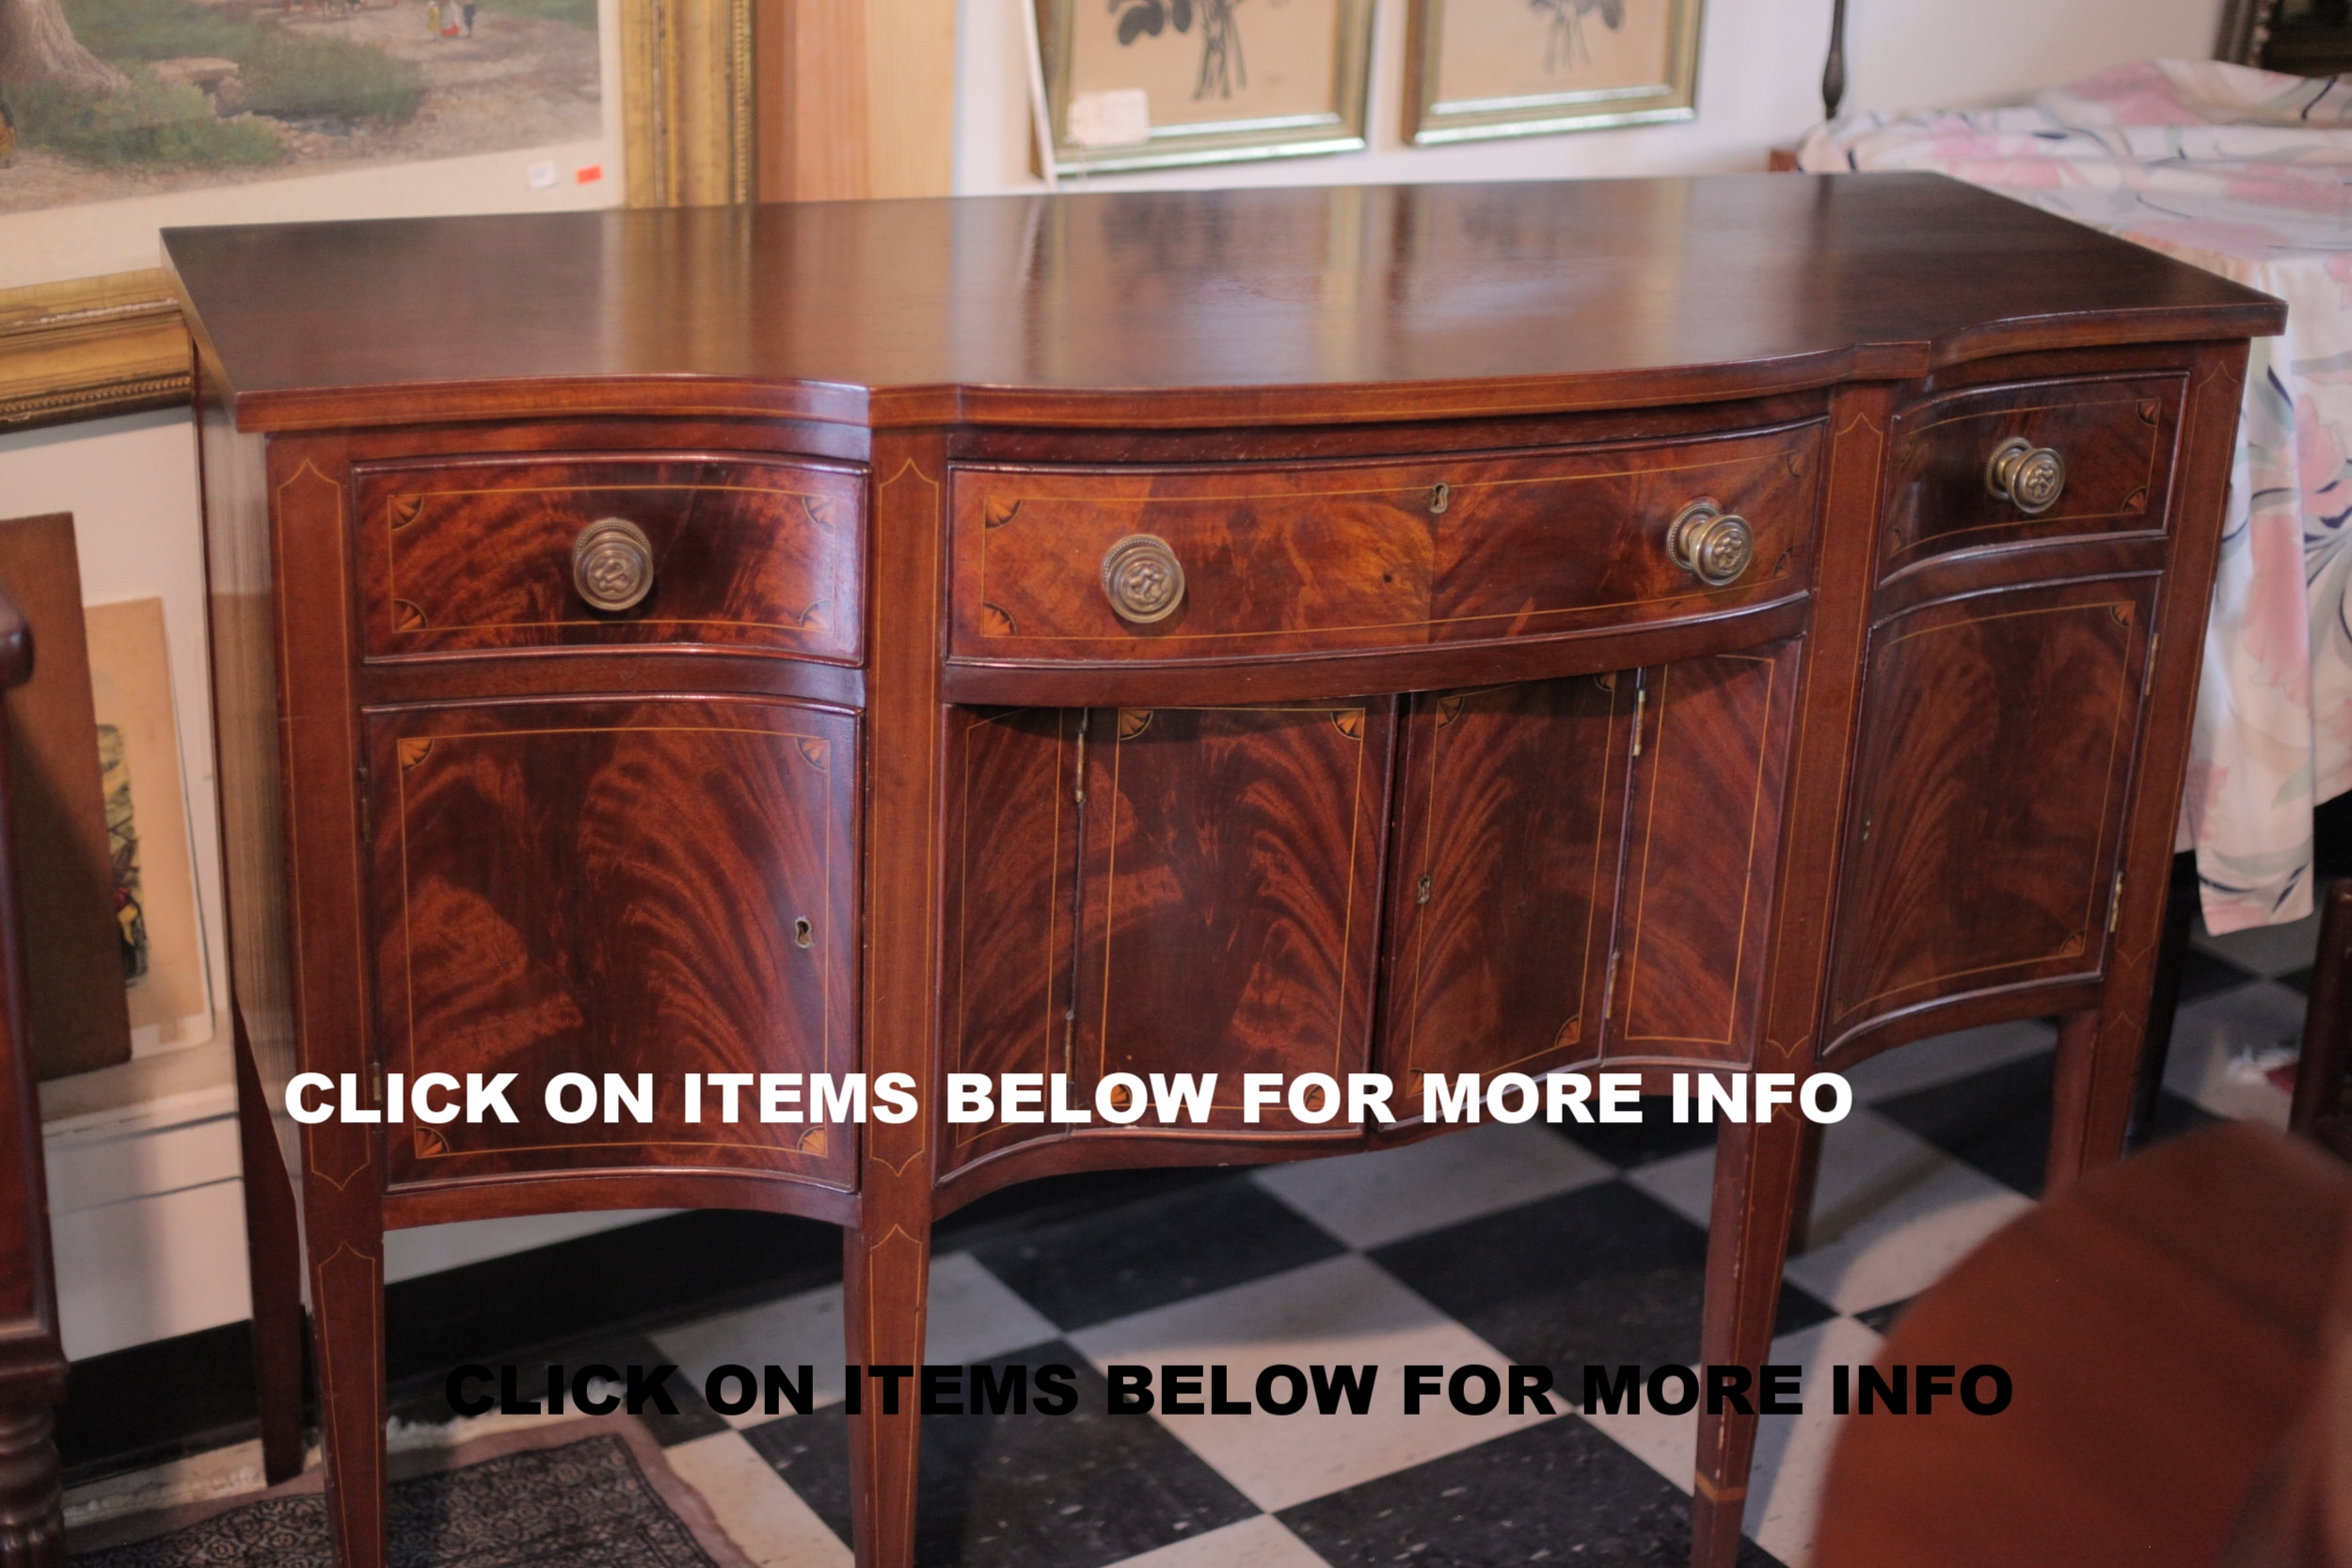 Furniture - Call or Email for Price InquiriesClick On Items Below For More Info